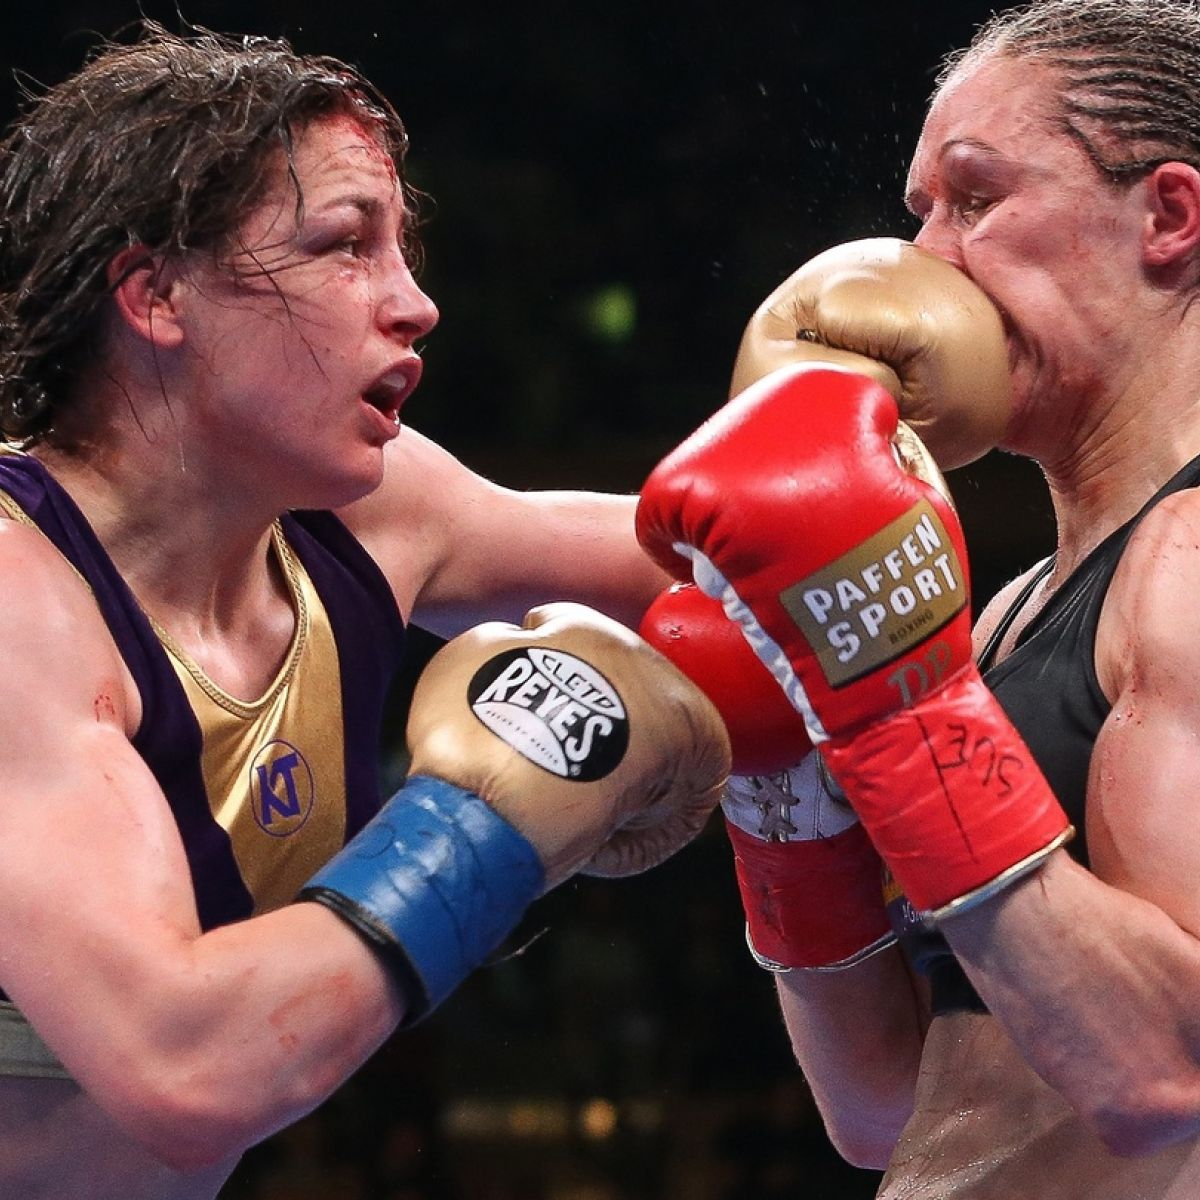 Controversy around Katie Taylor's points win over Persoon